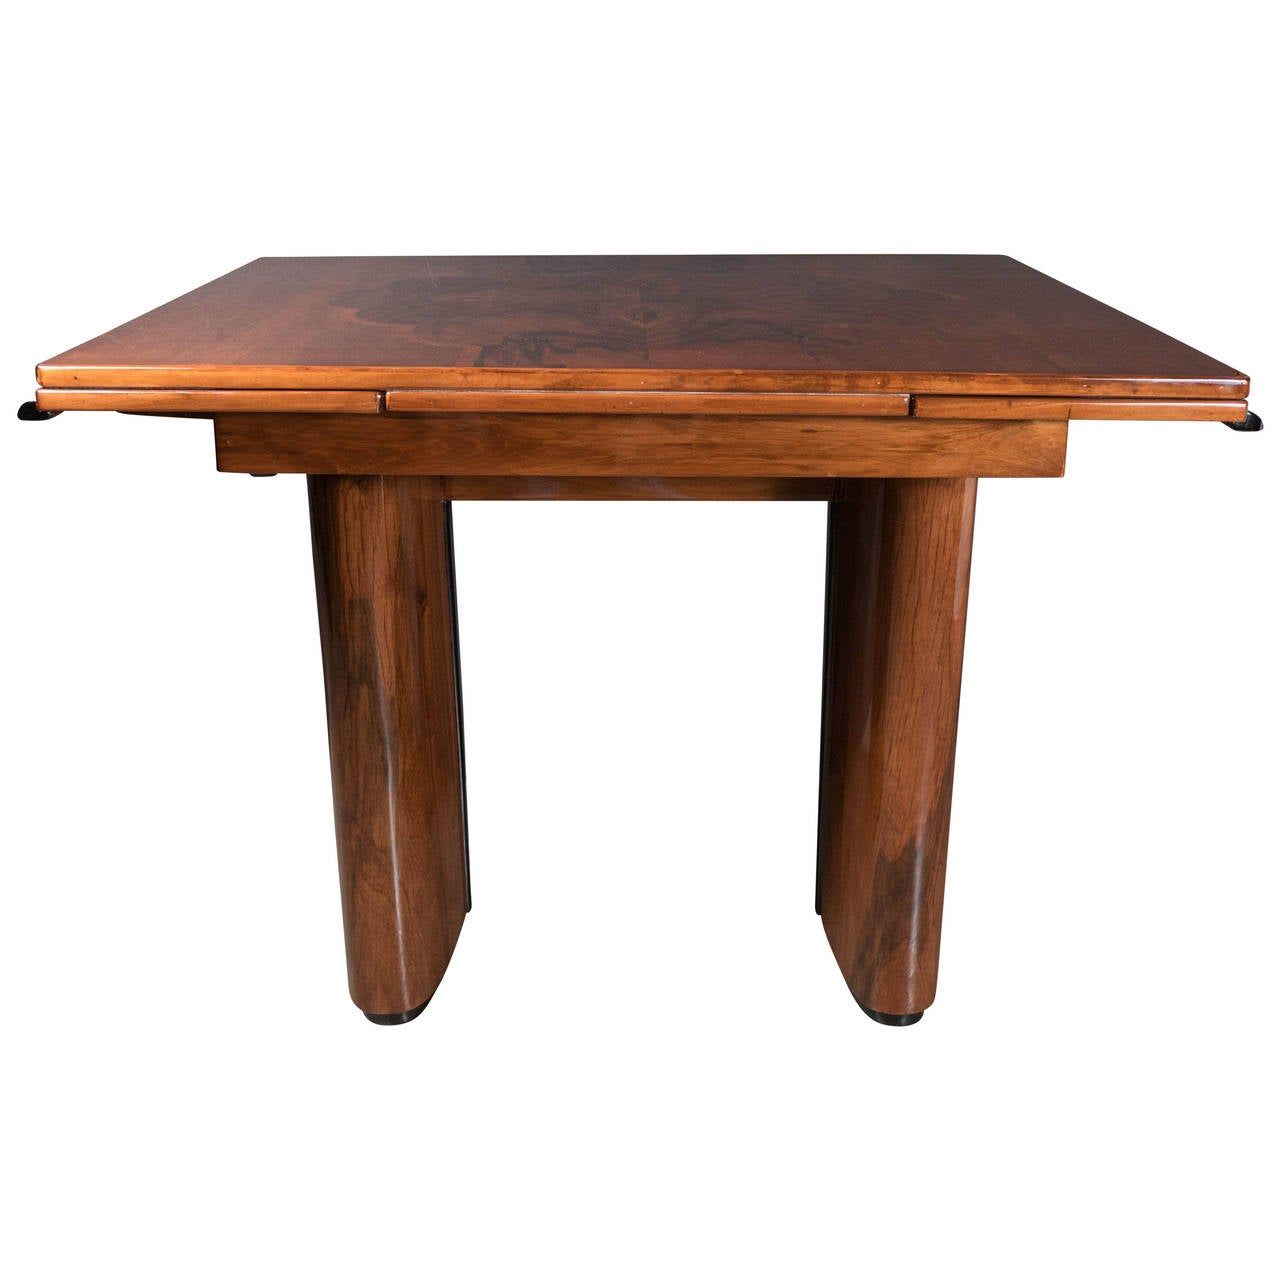 Art deco extension dining table in mahogany for sale at 1stdibs for Dining room tables with extensions